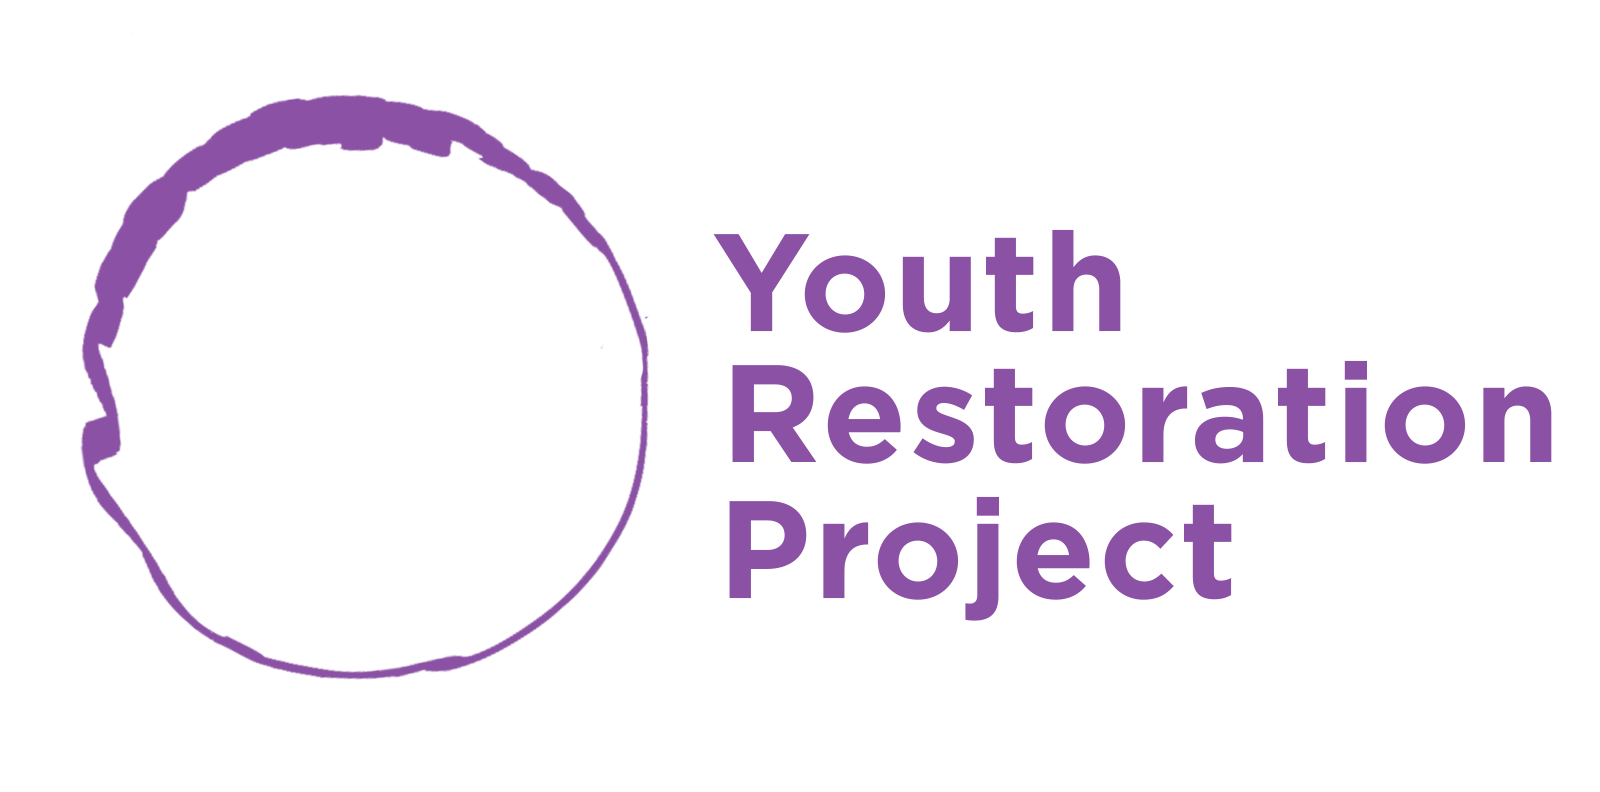 Youth Restoration Project of Rhode Island